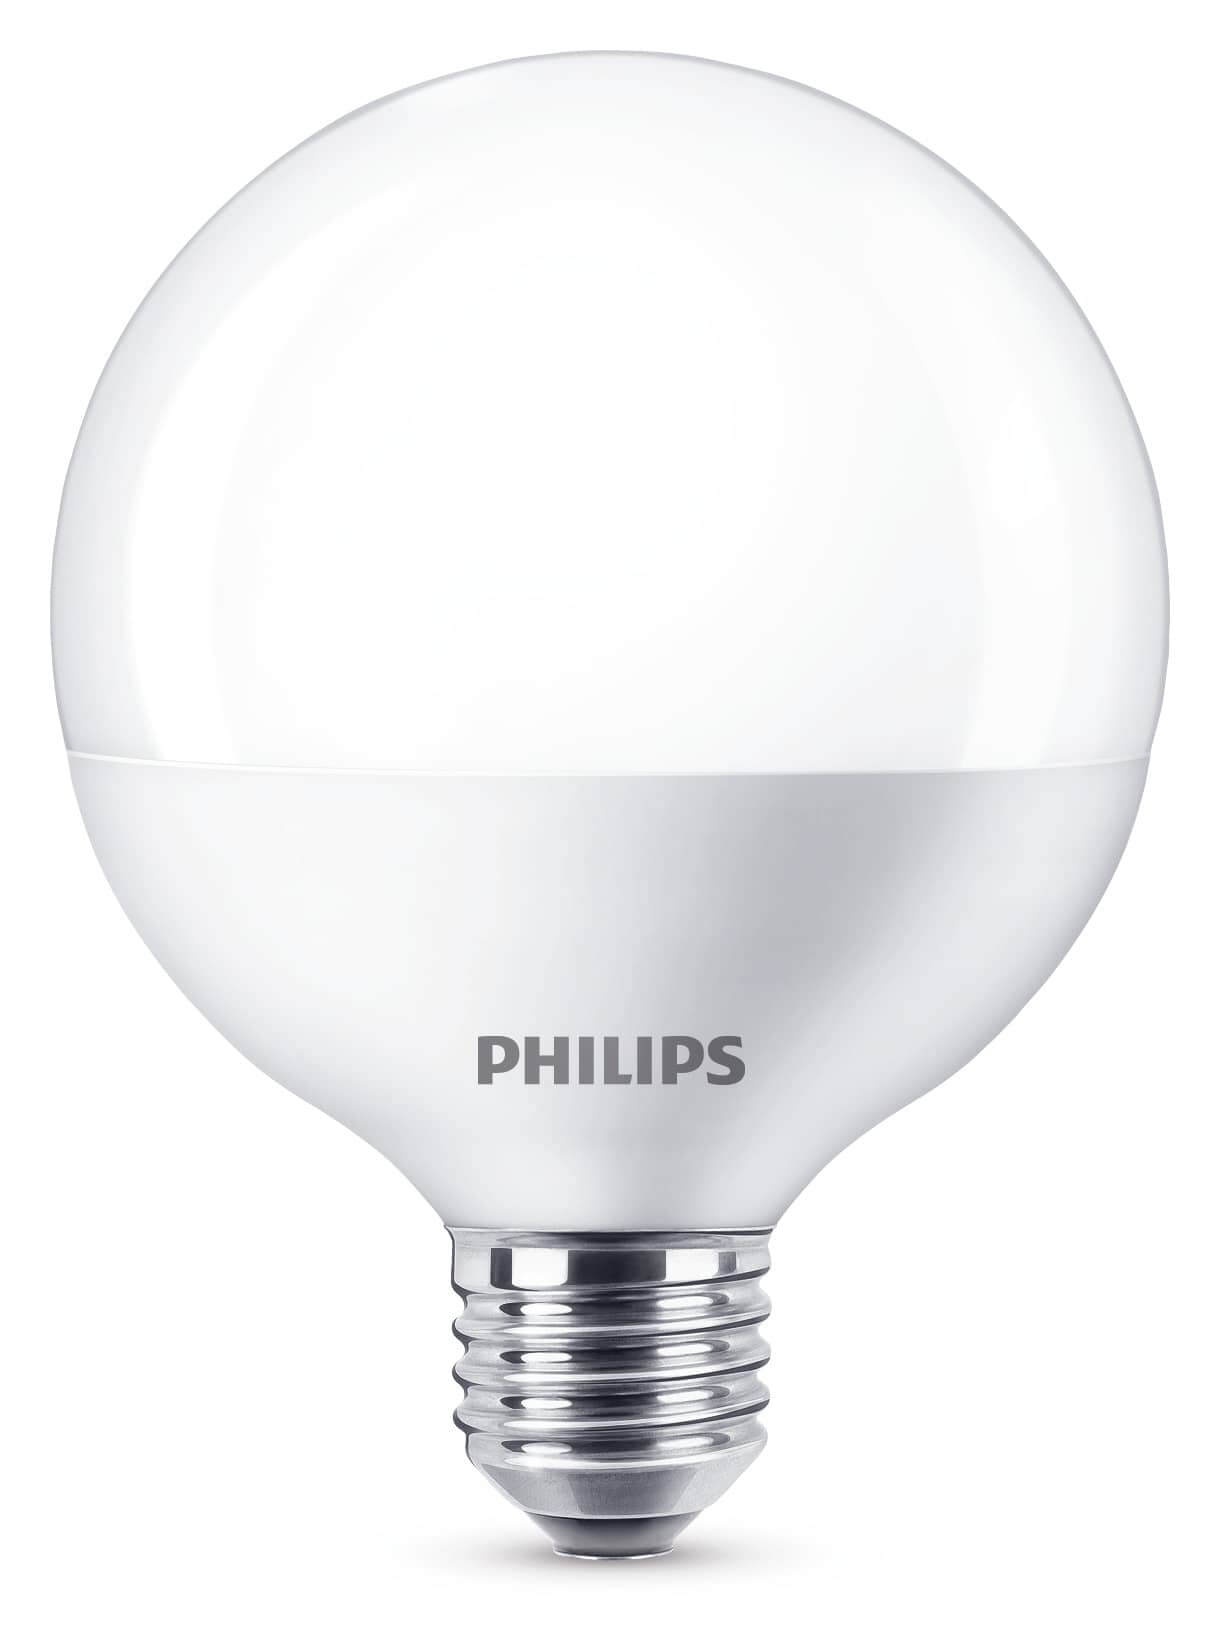 philips e27 led globe filament 9 5w 806lm warmweiss online kaufen. Black Bedroom Furniture Sets. Home Design Ideas